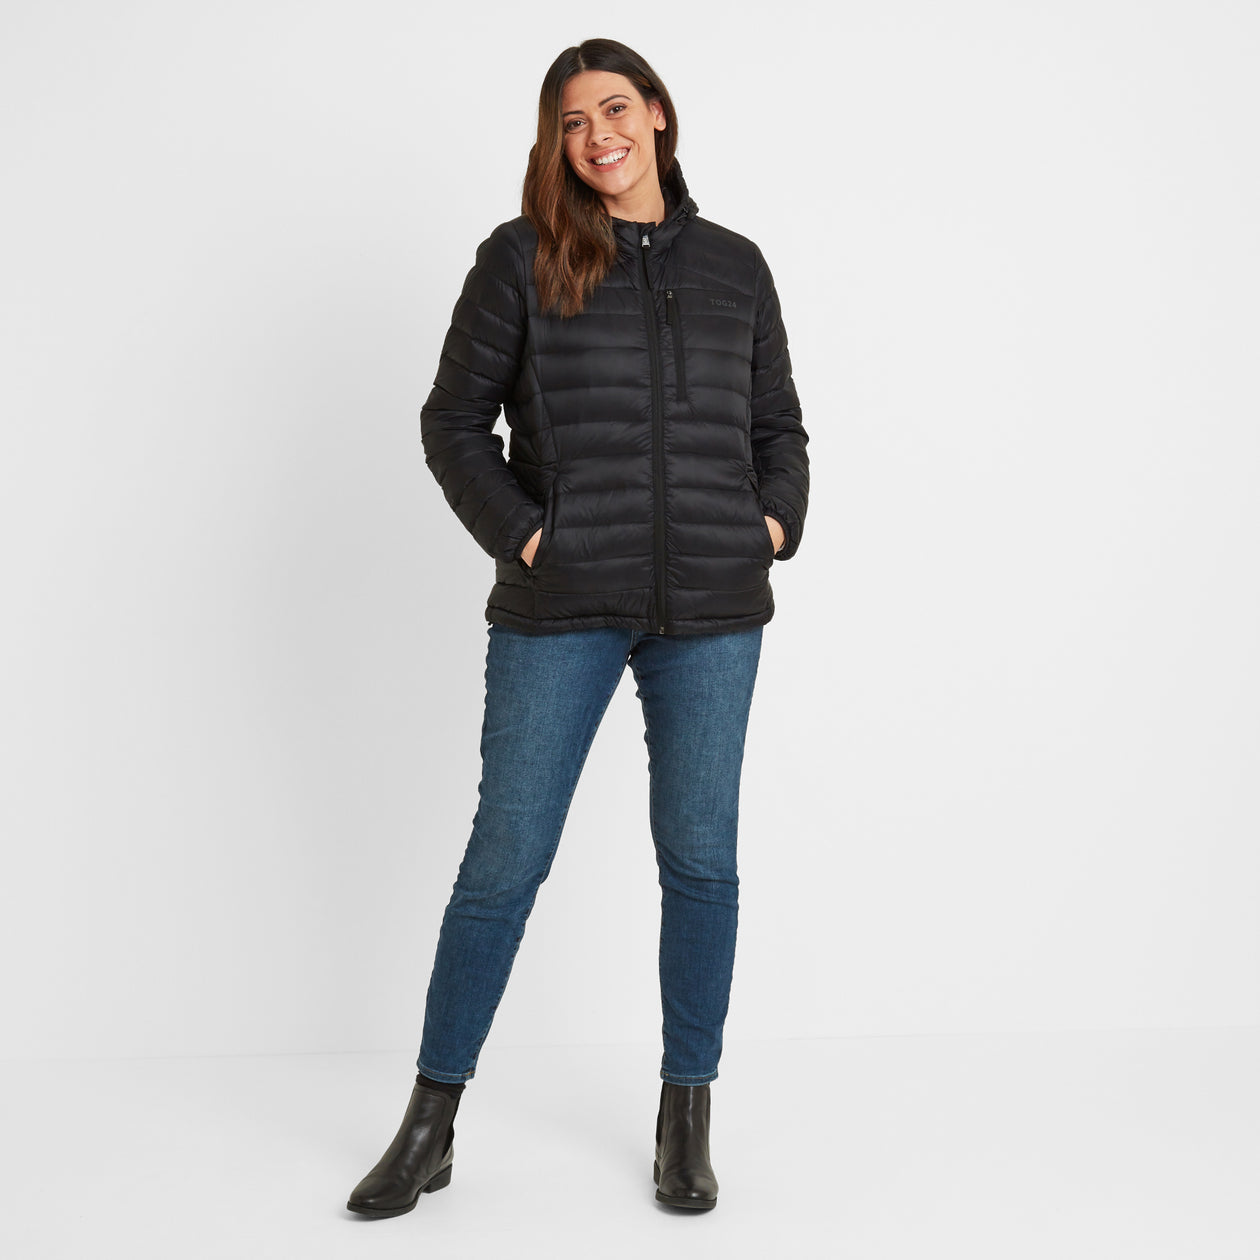 Base Womens Hooded Down Jacket - Coal Grey image 8